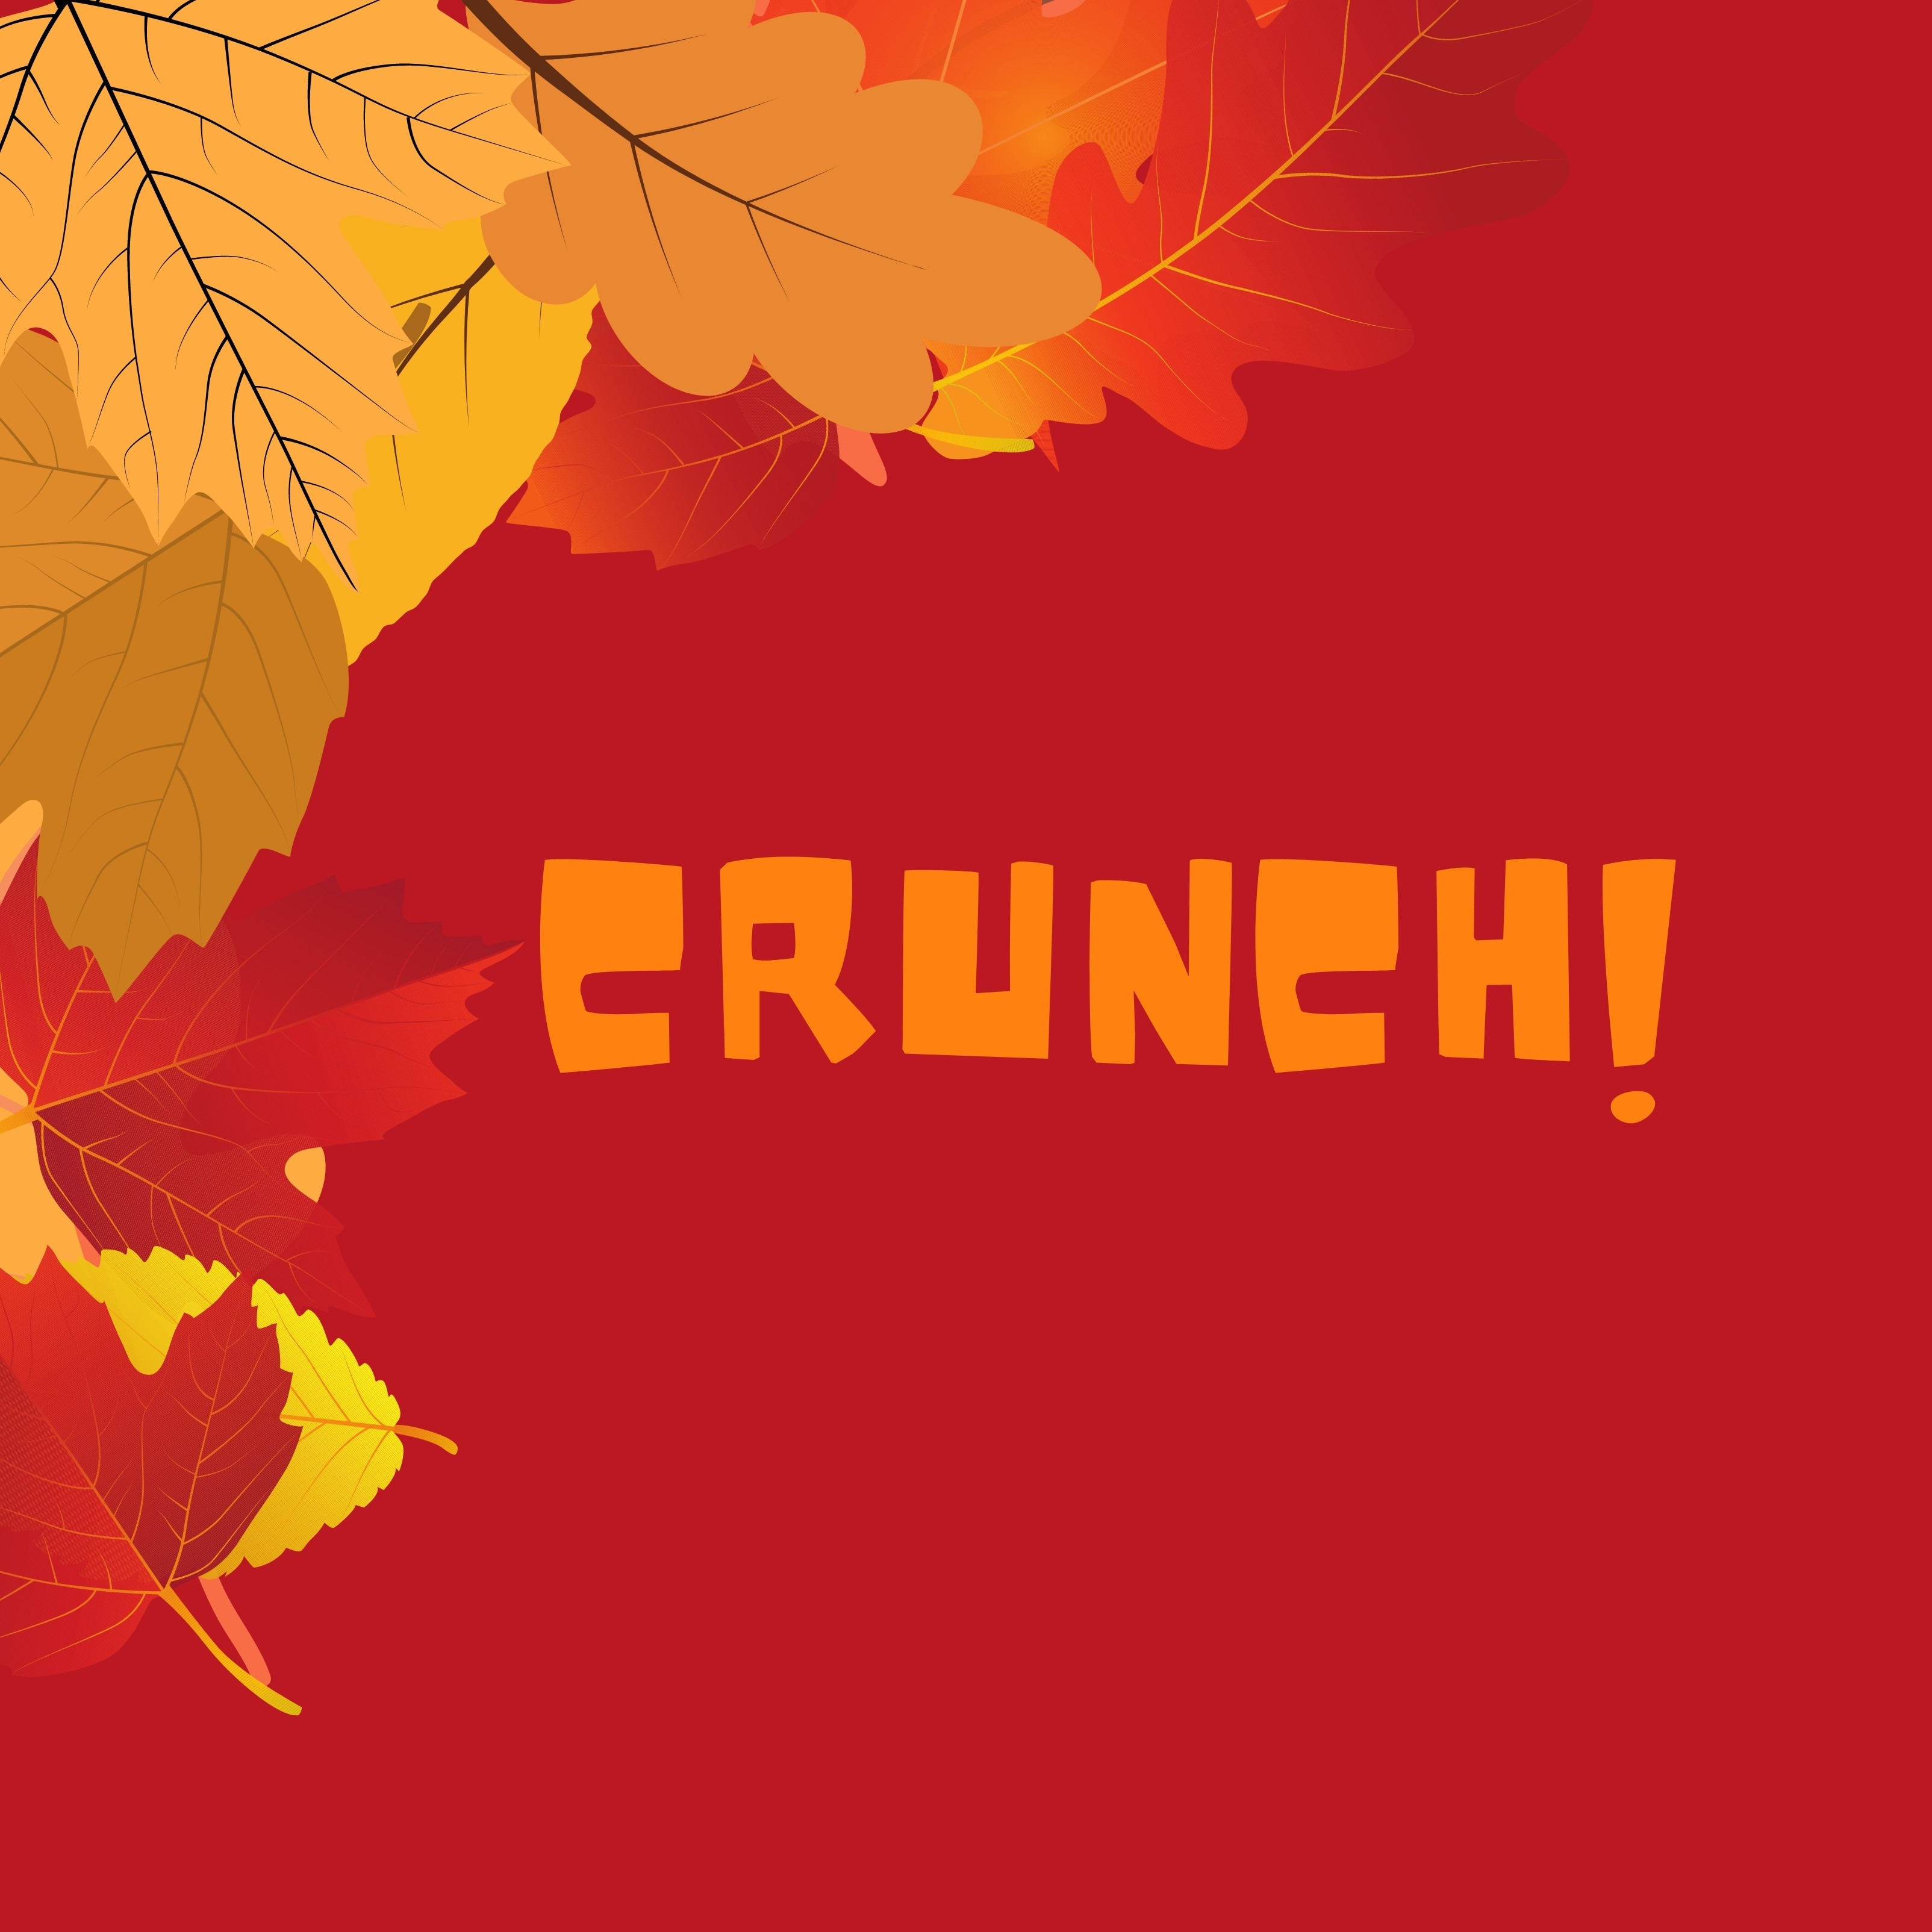 Crunch Autumn Leaves Red iPad Wallpaper